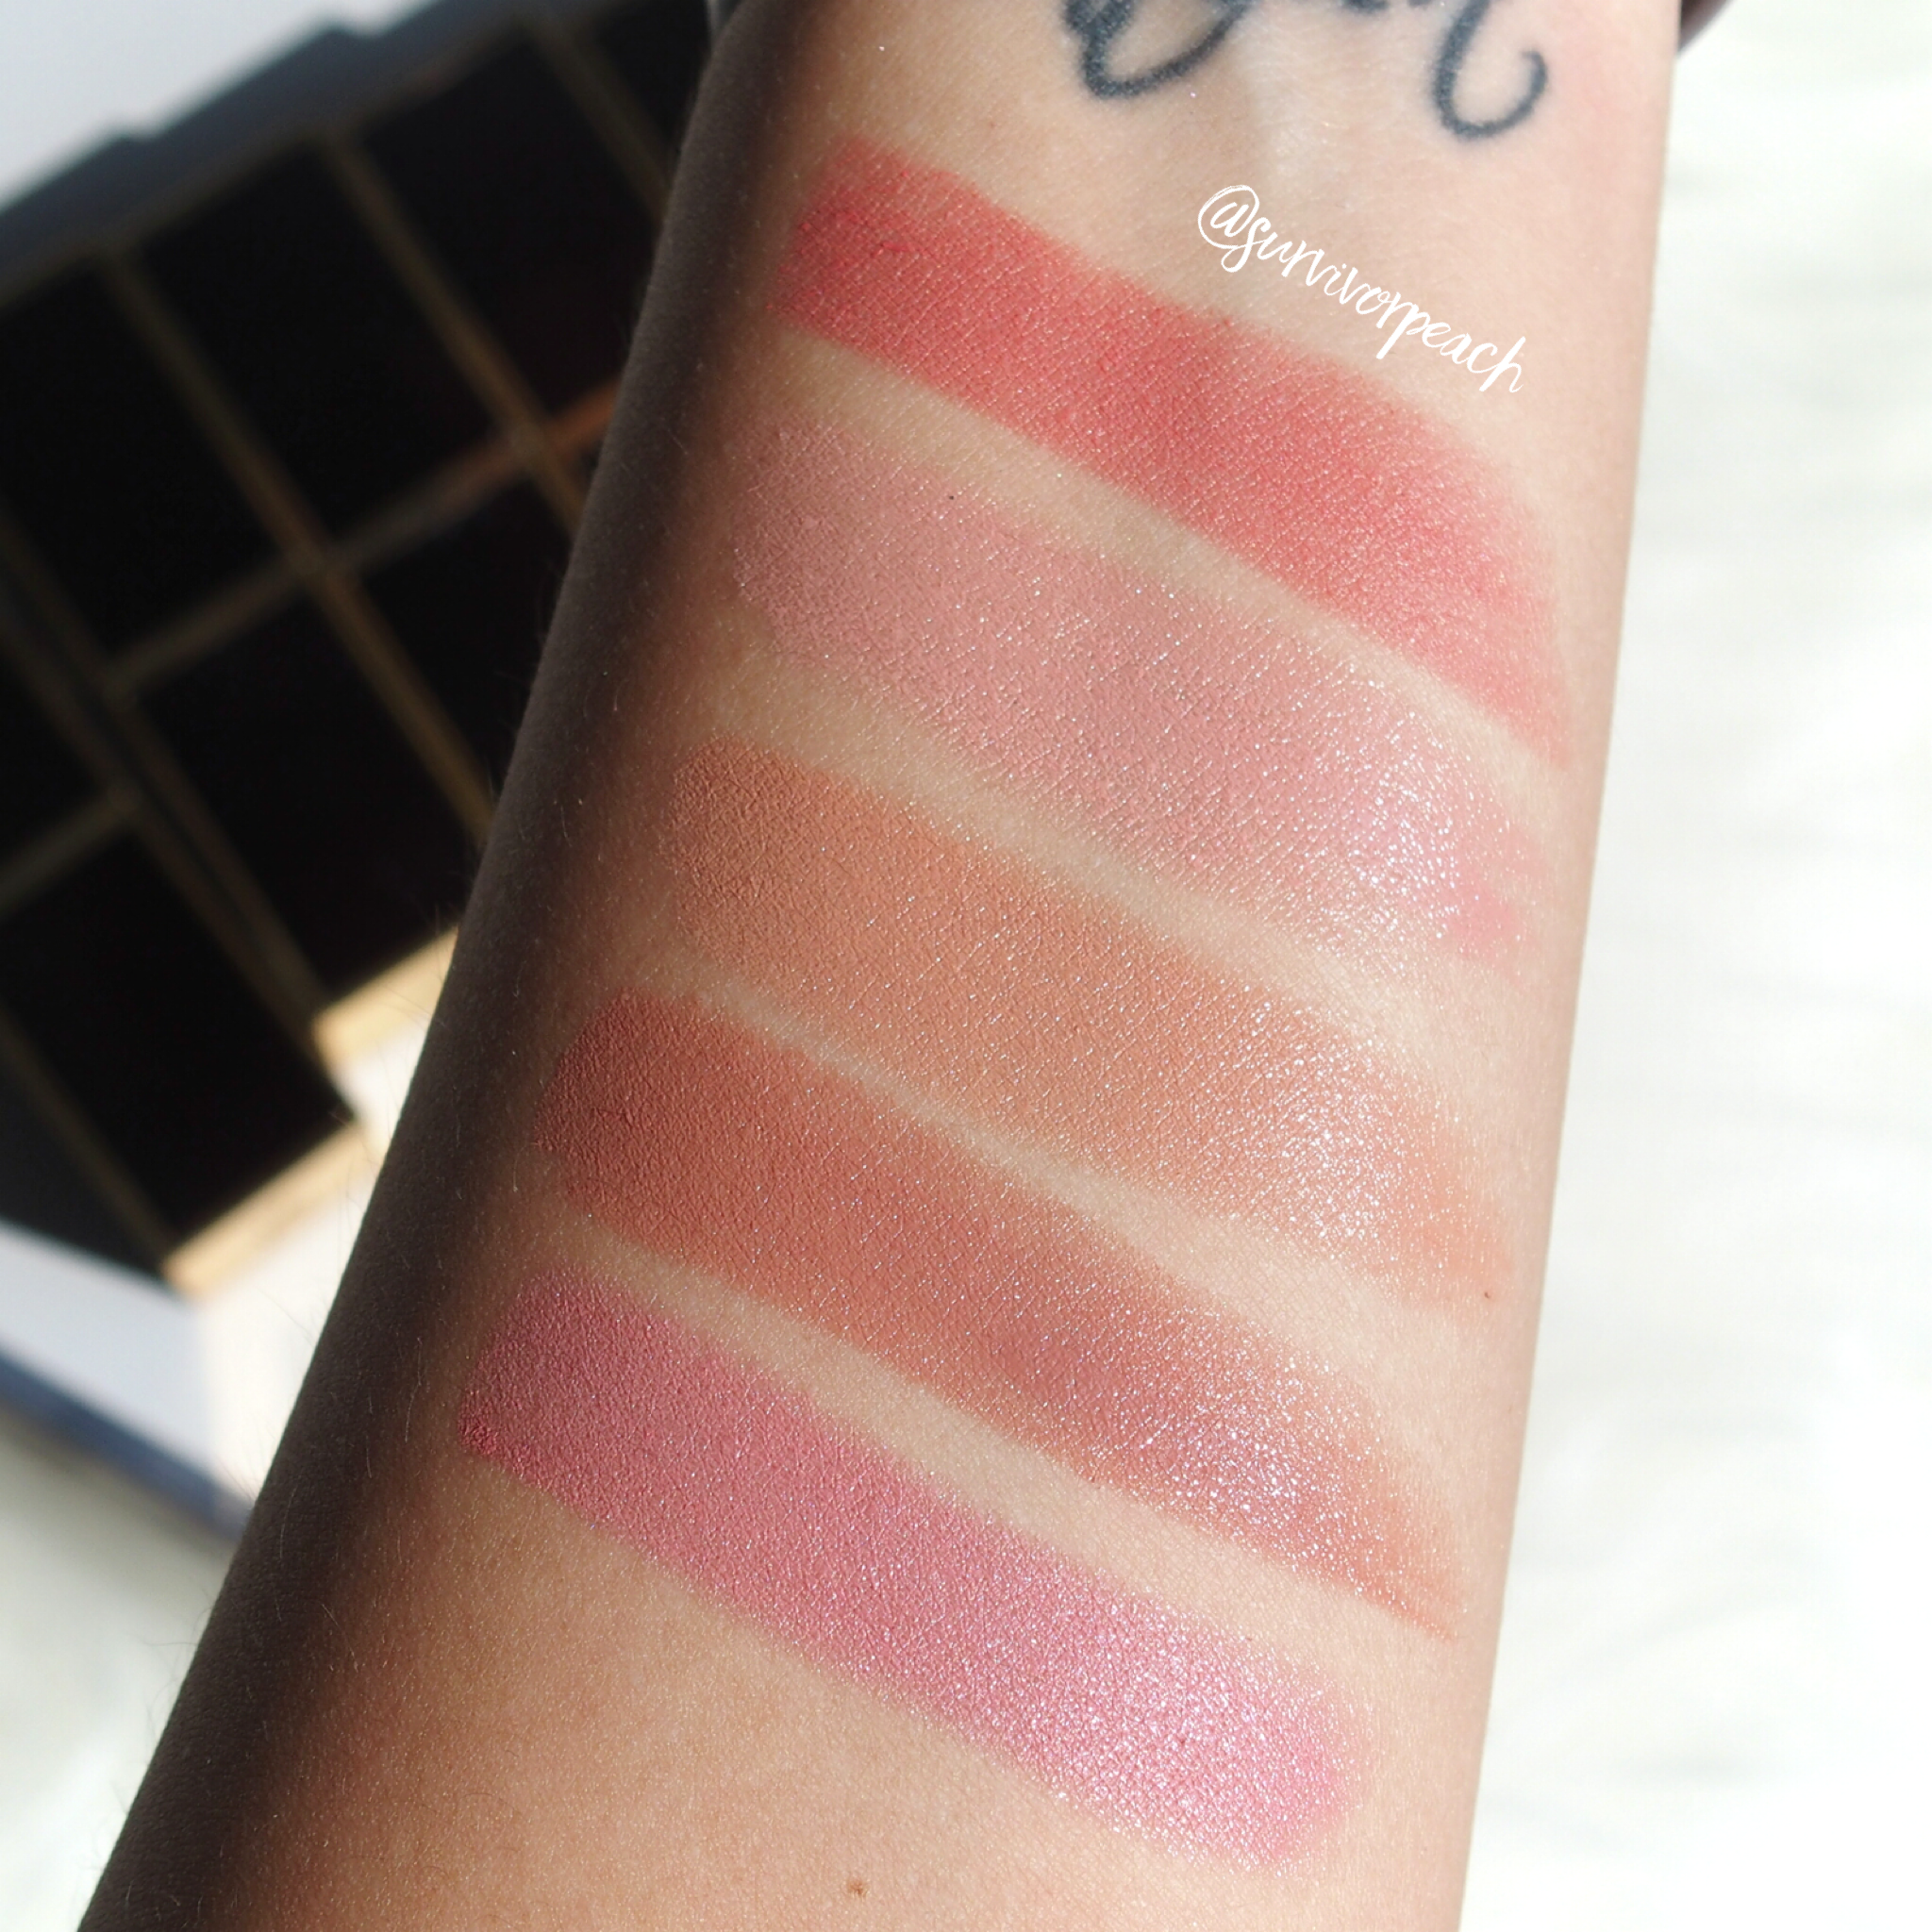 Swatches of the Tom Ford Lipsticks in Age of Consent, Spiced Honey, Erogenous, Autoerotique, Paper Doll